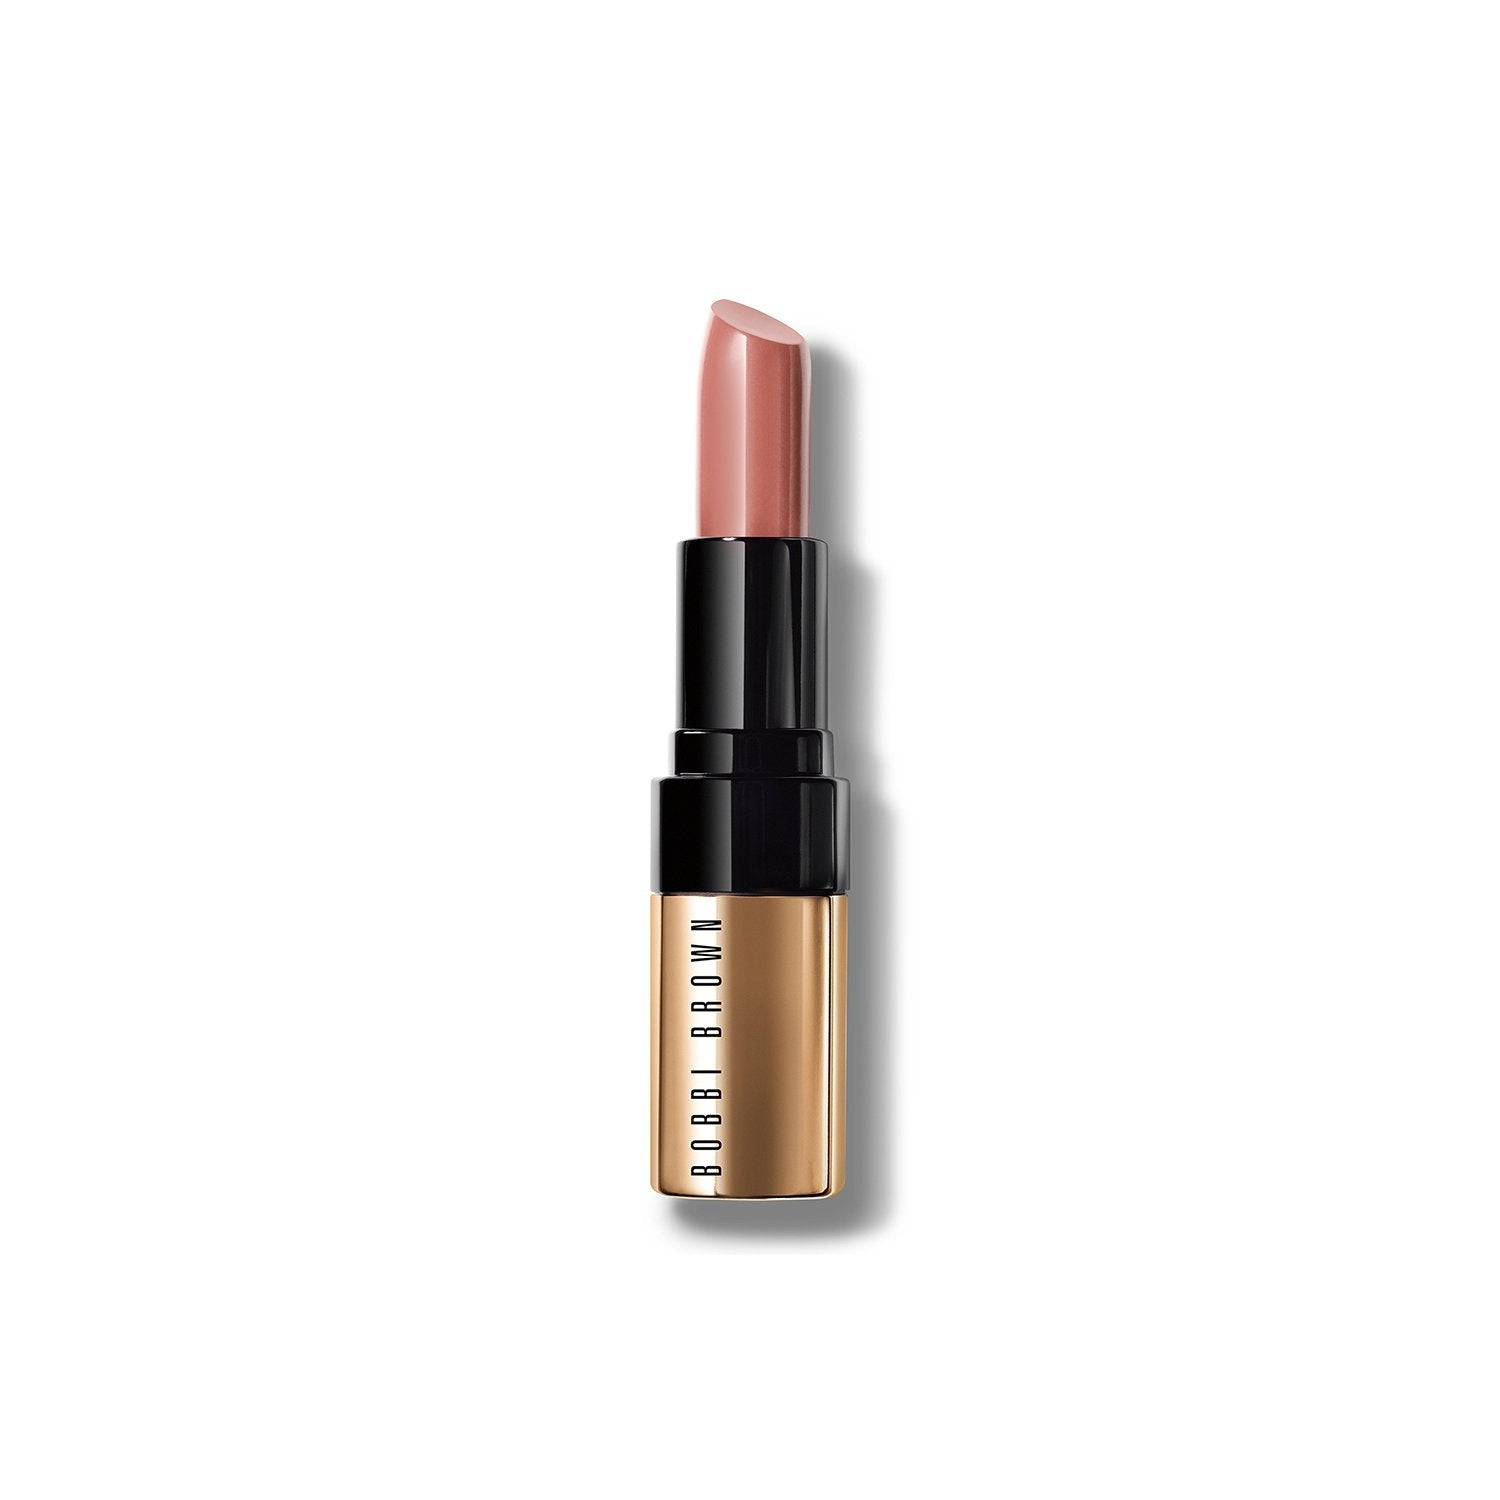 B.BROWN LUXE LIPCOLOR NEUTRAL ROSE